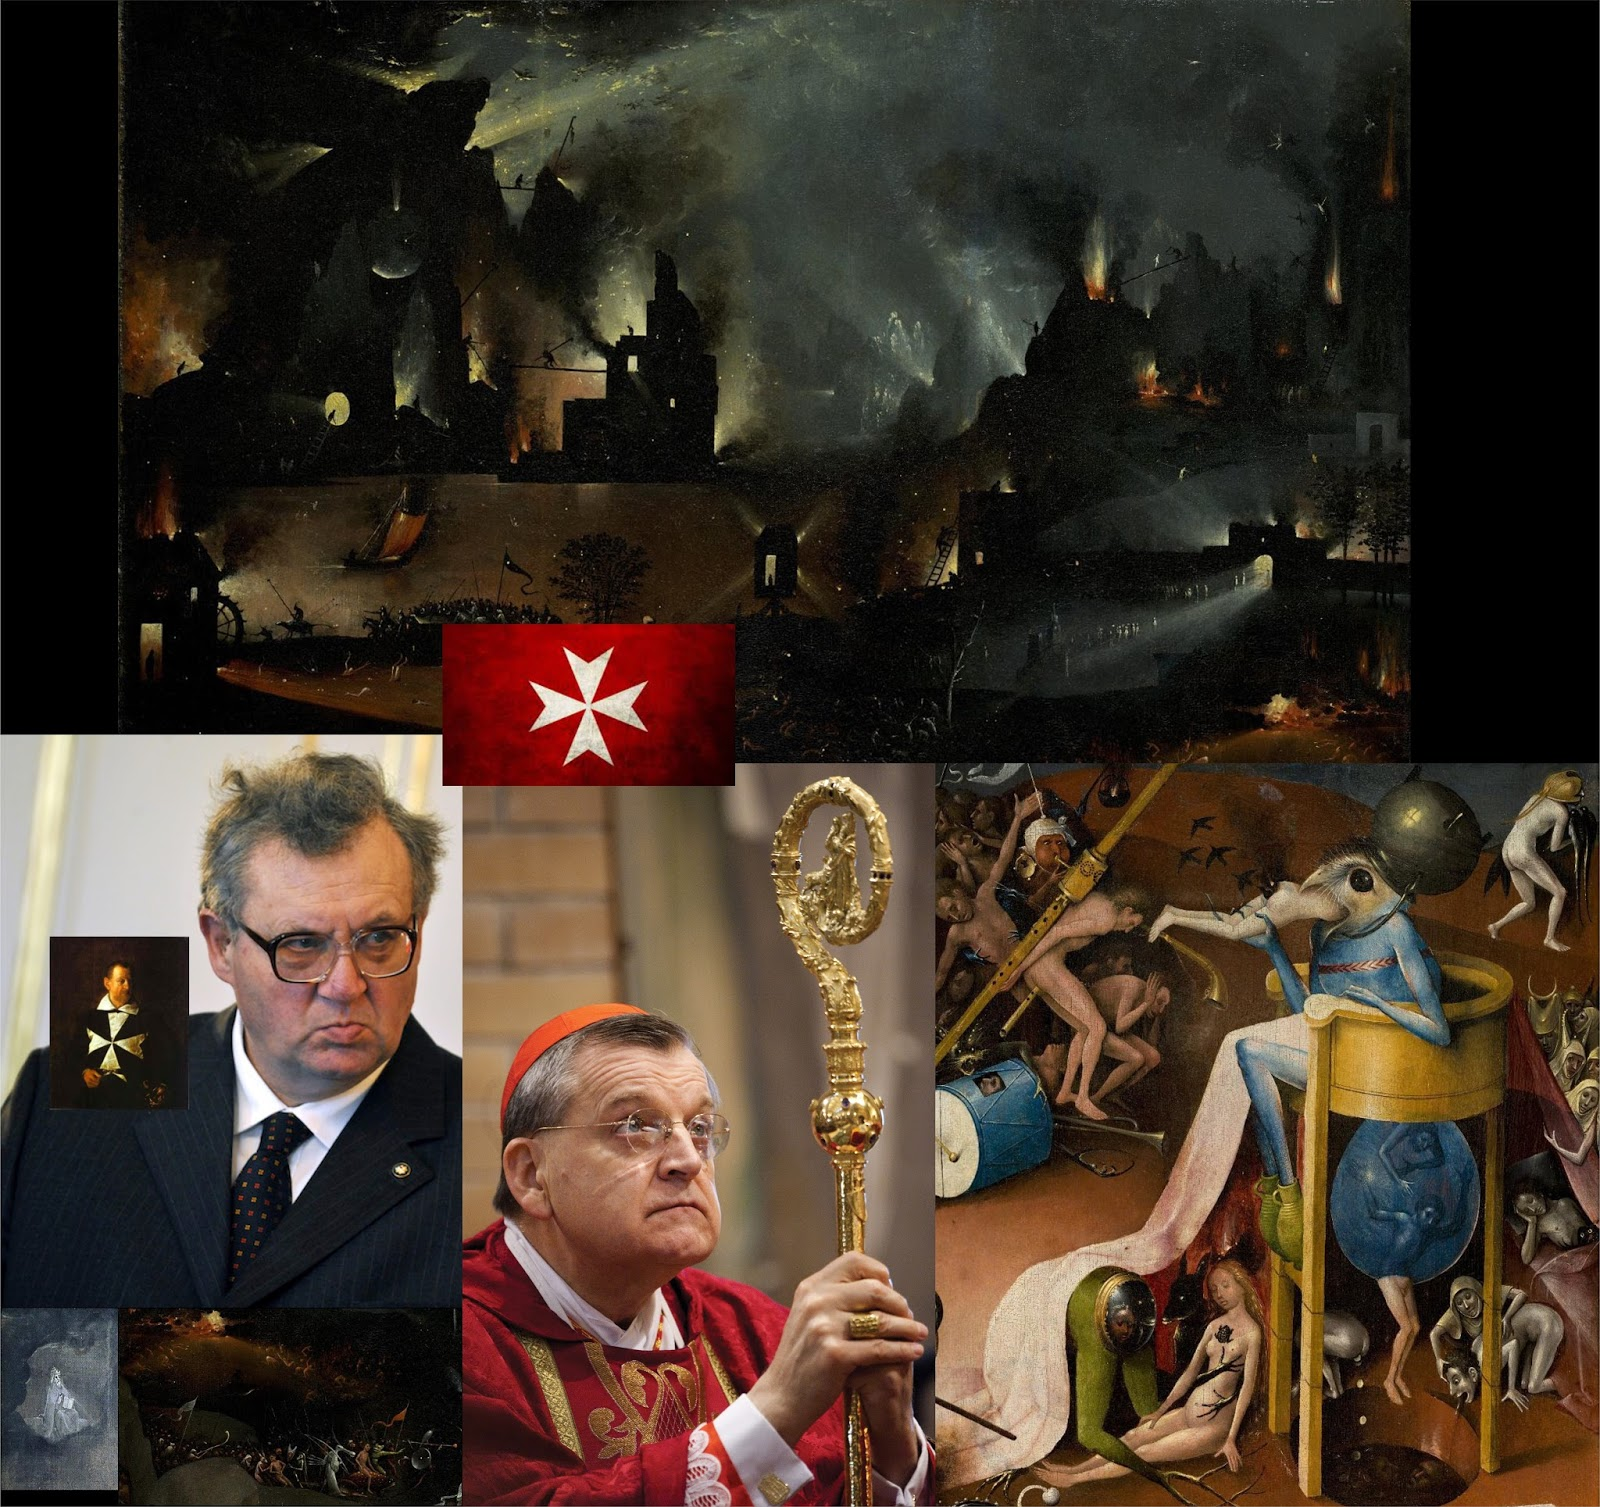 in knights of malta land is spiritual fascism in retreat galactic connection. Black Bedroom Furniture Sets. Home Design Ideas